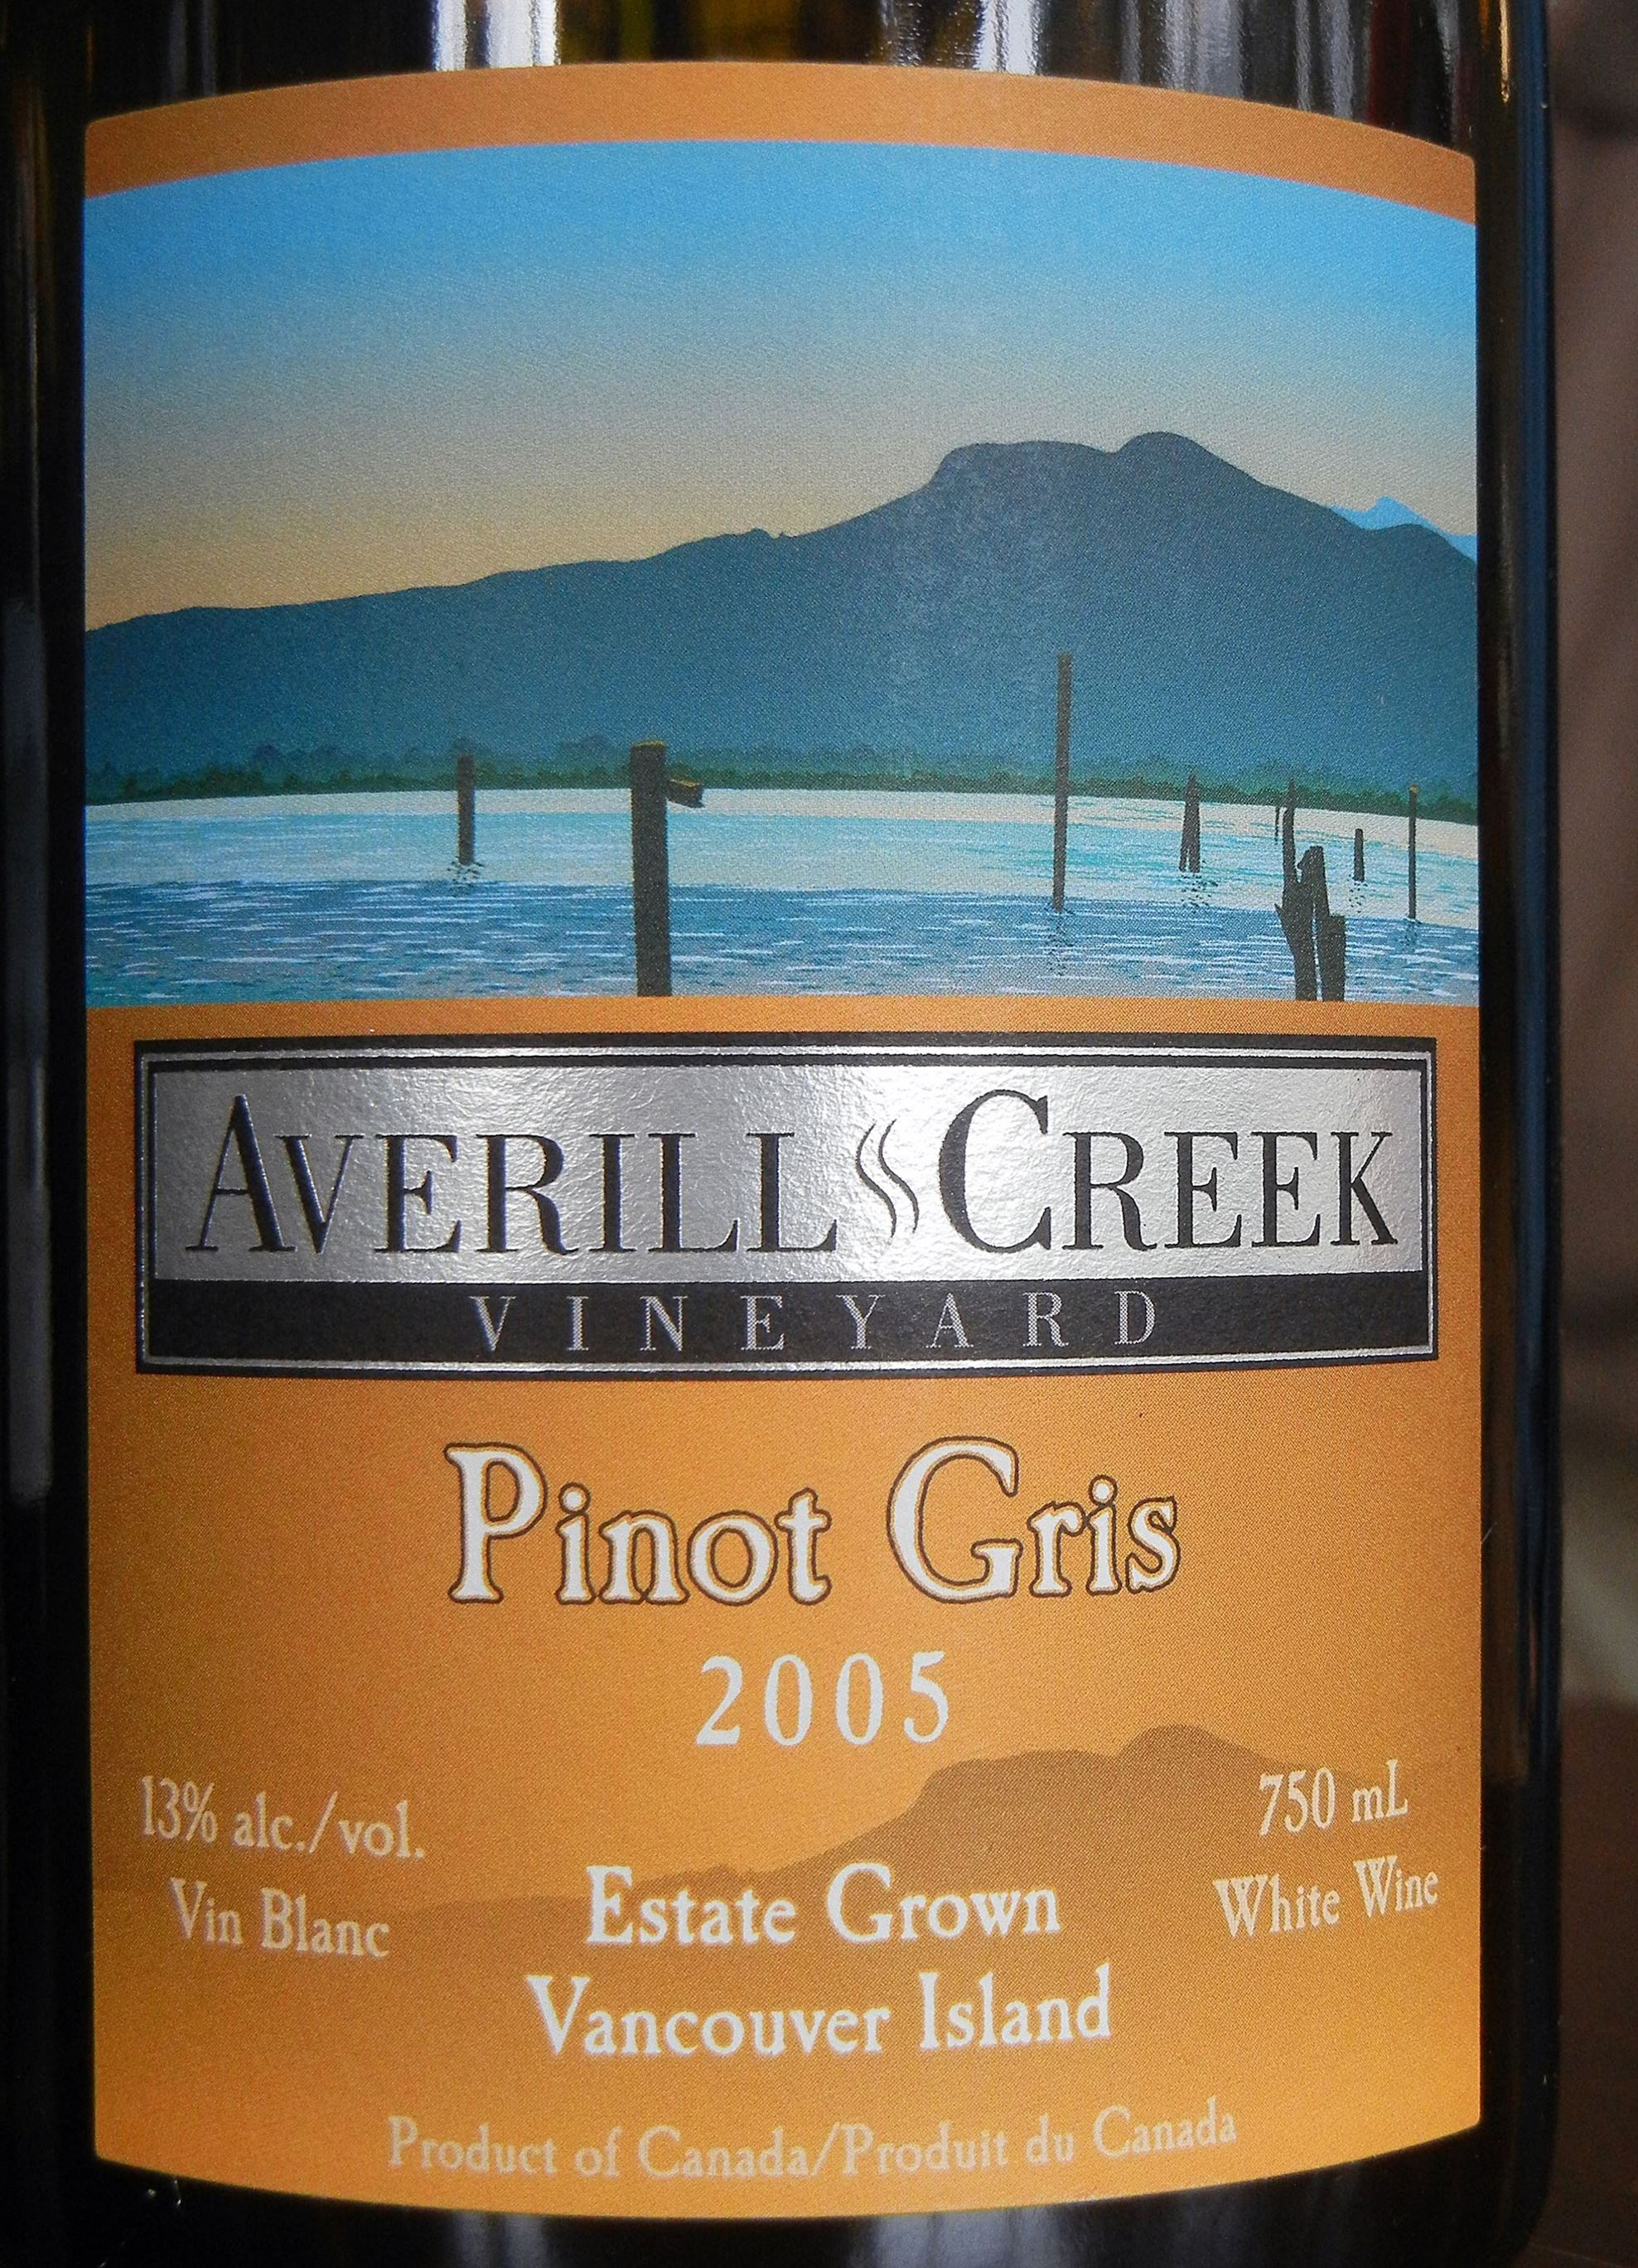 Averill Creek Pinot Gris 2005 Label - BC Pinot Noir Tasting Review 24